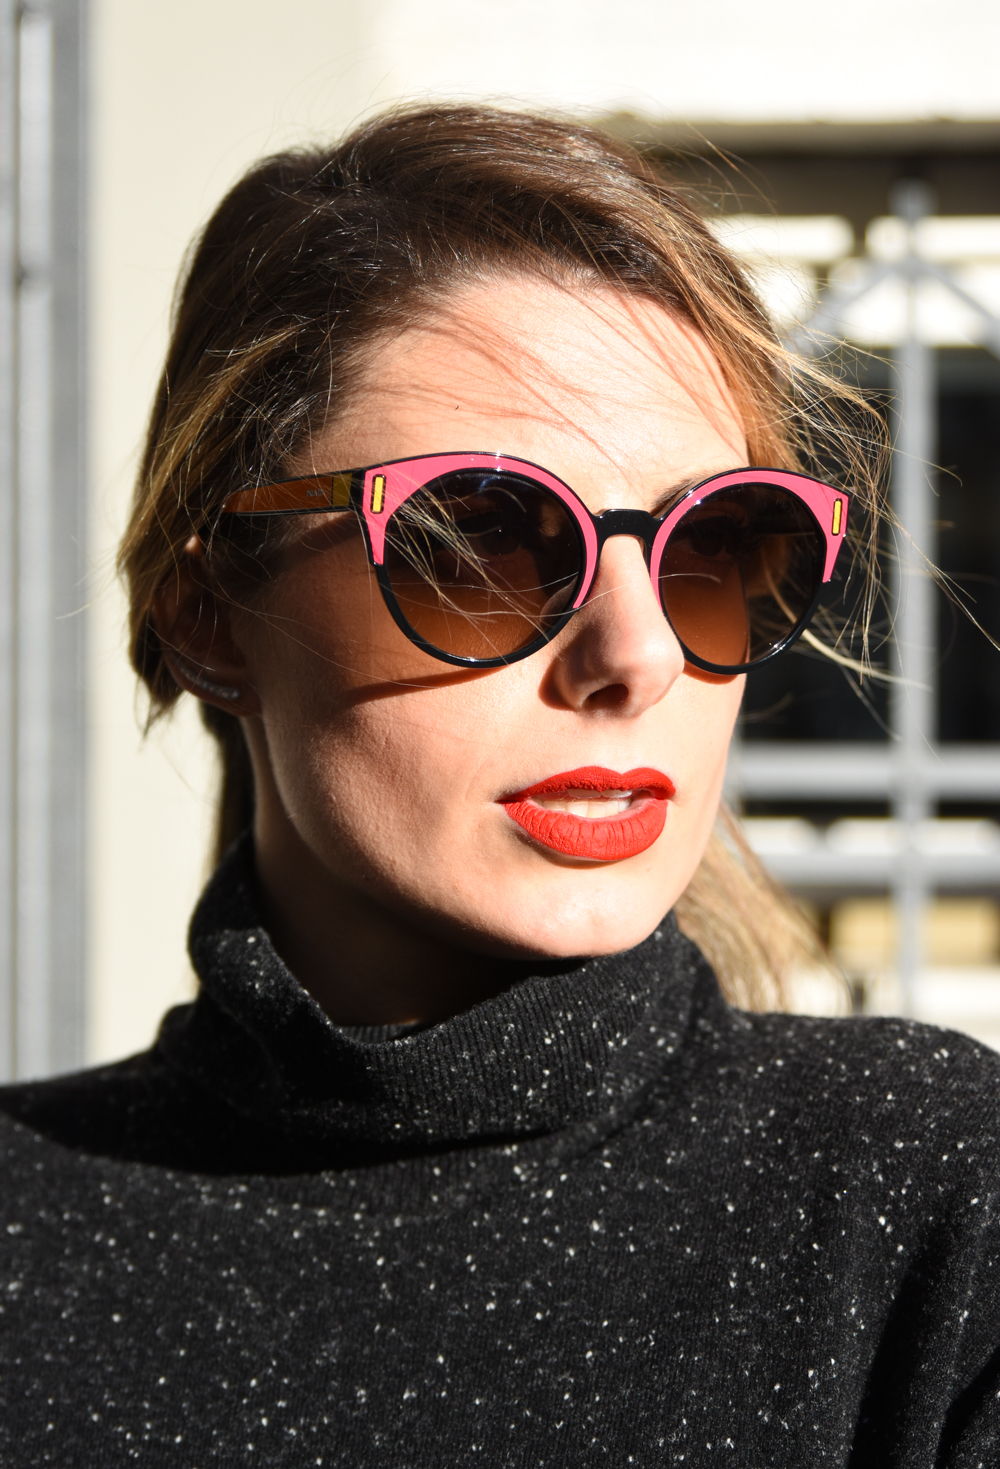 PRADA SUNGLASSES FALL WINTER 17/18